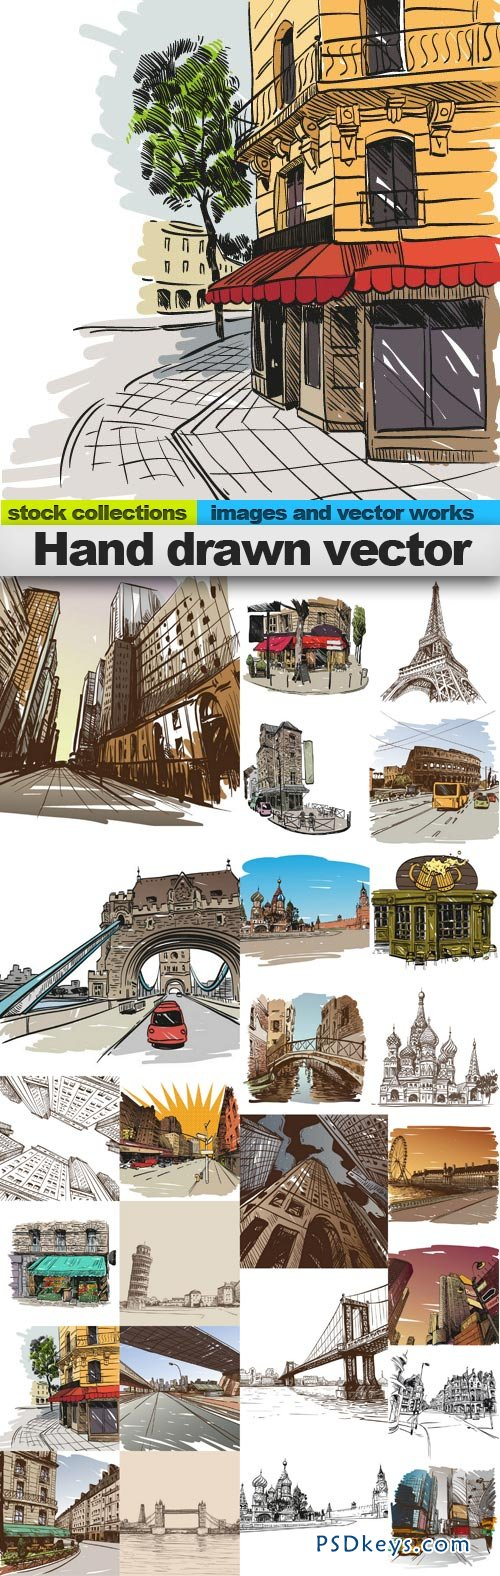 Hand drawn vector 25xEPS